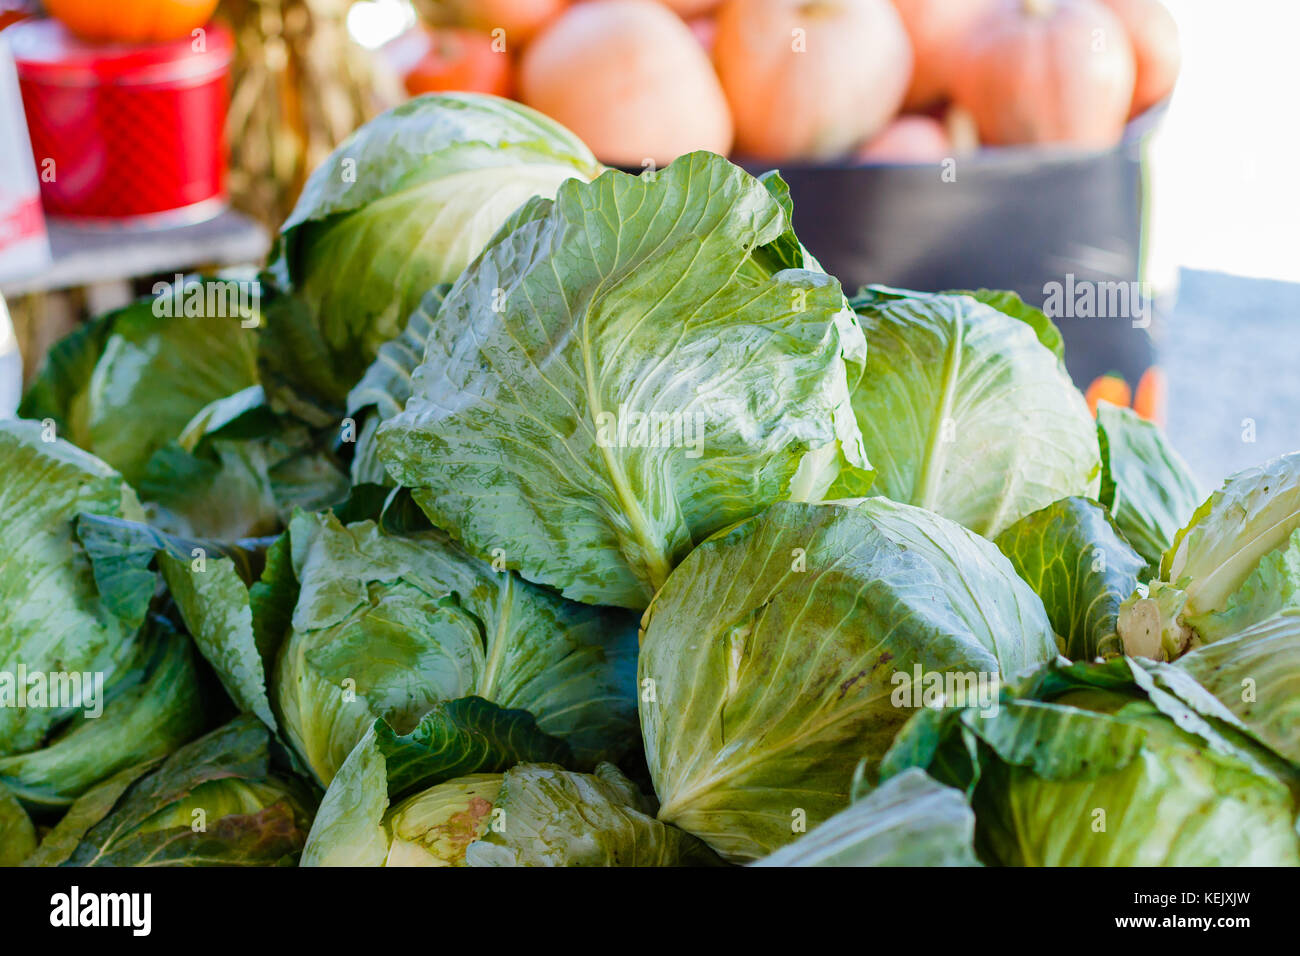 Fresh heads of cabbage at a produce stand. - Stock Image